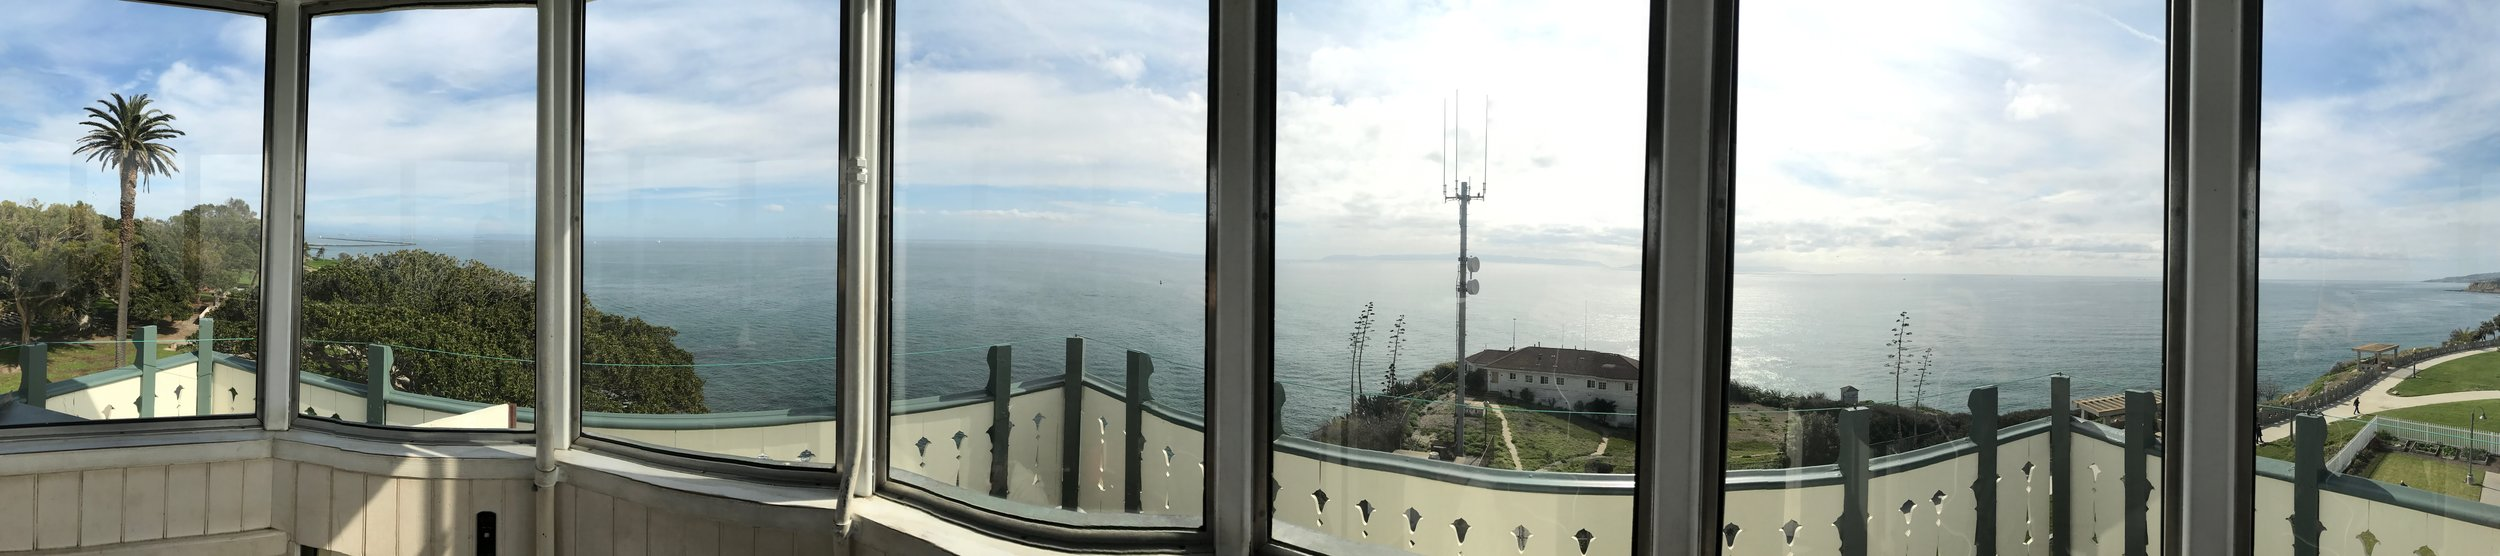 The view from the lighthouse tower.